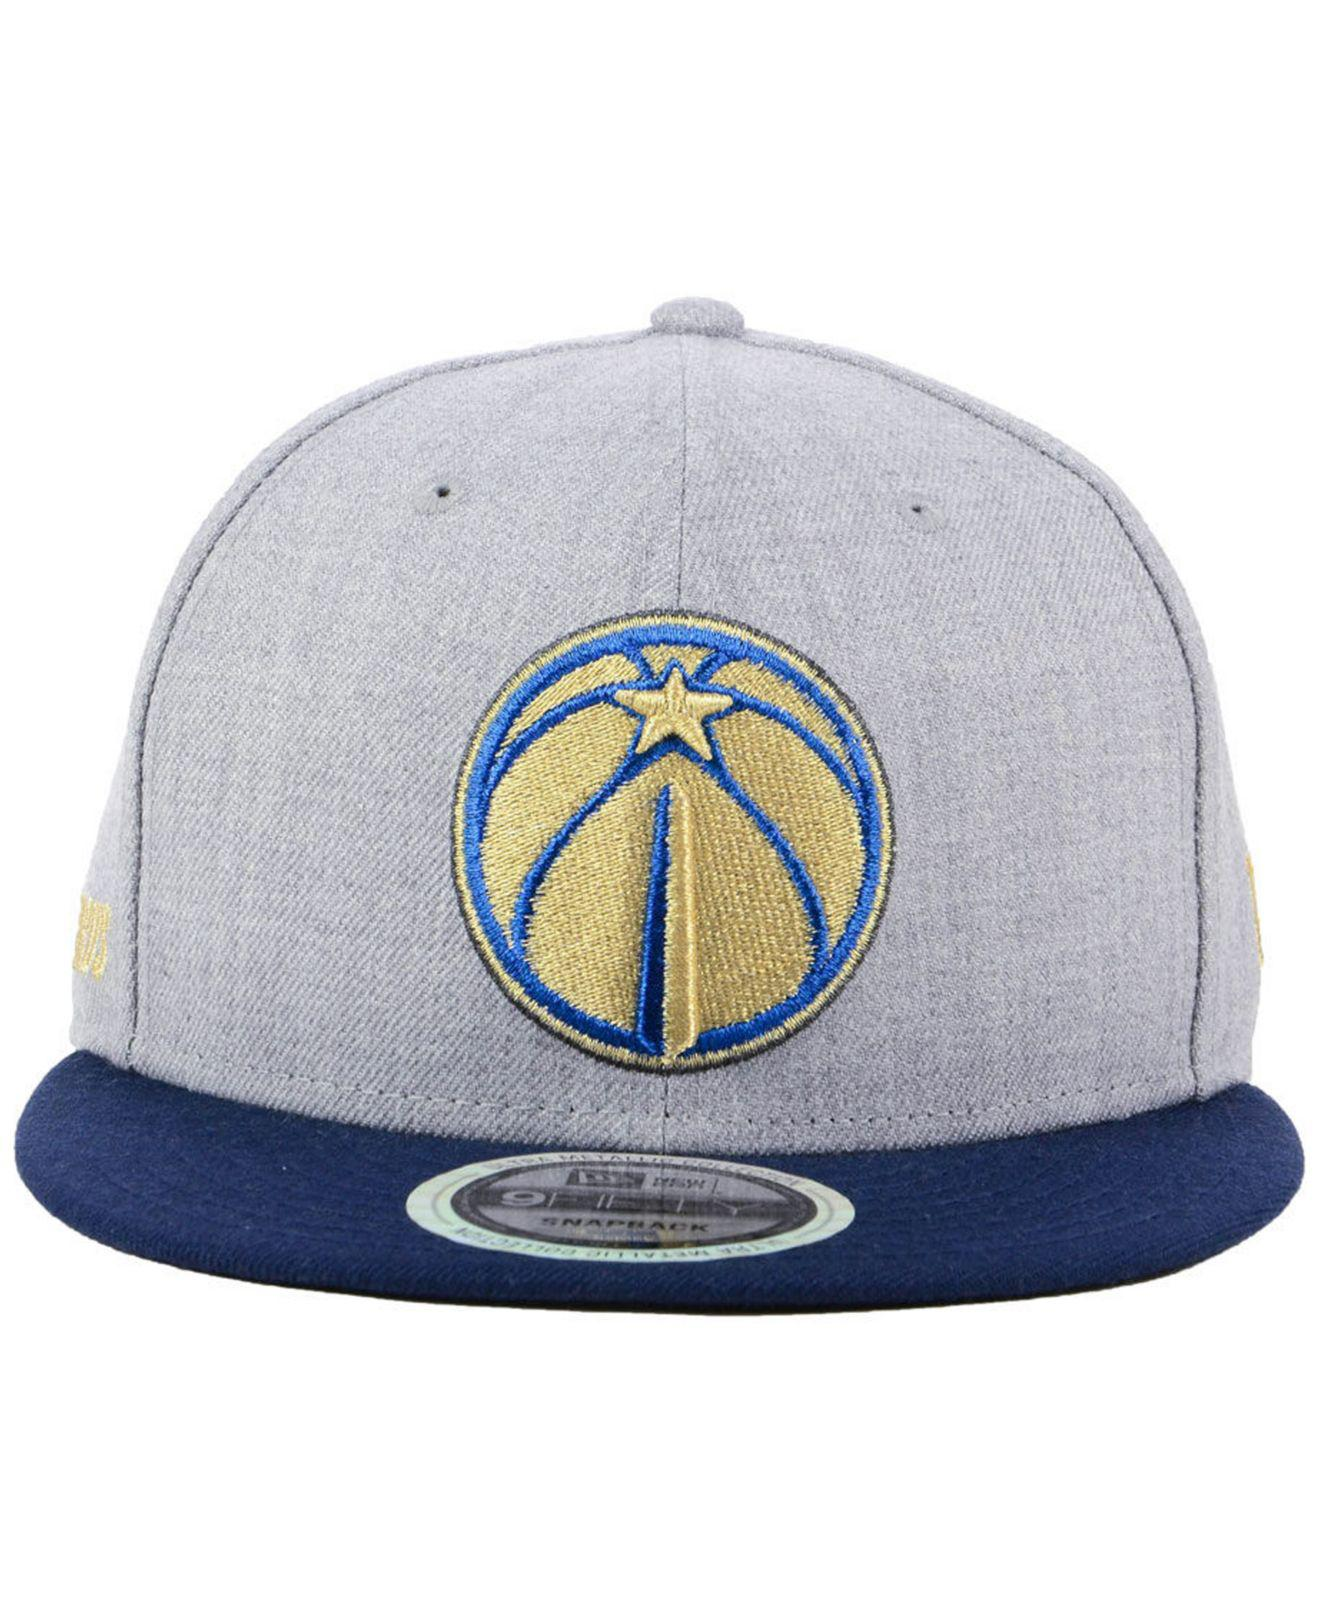 ed86ede0 coupon code for lyst ktz washington wizards heather metallic 9fifty snapback  cap for men a5ef1 89f21